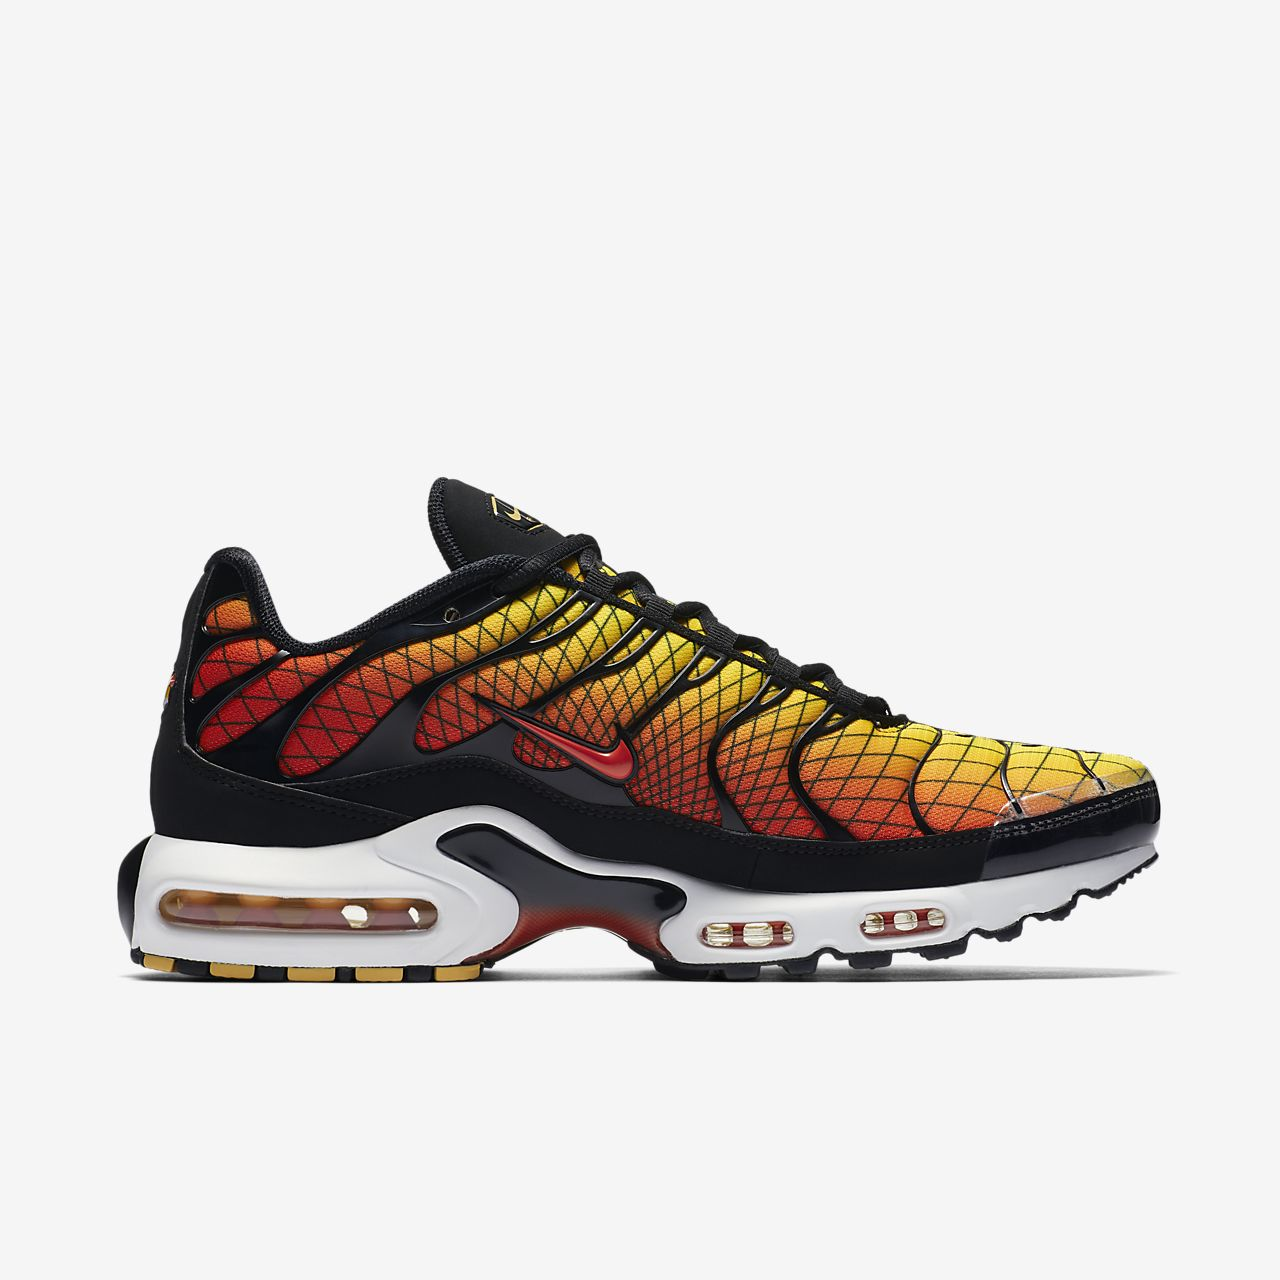 huge selection of d068f 8e88e ... Chaussure Nike Air Max Plus TN SE pour Homme